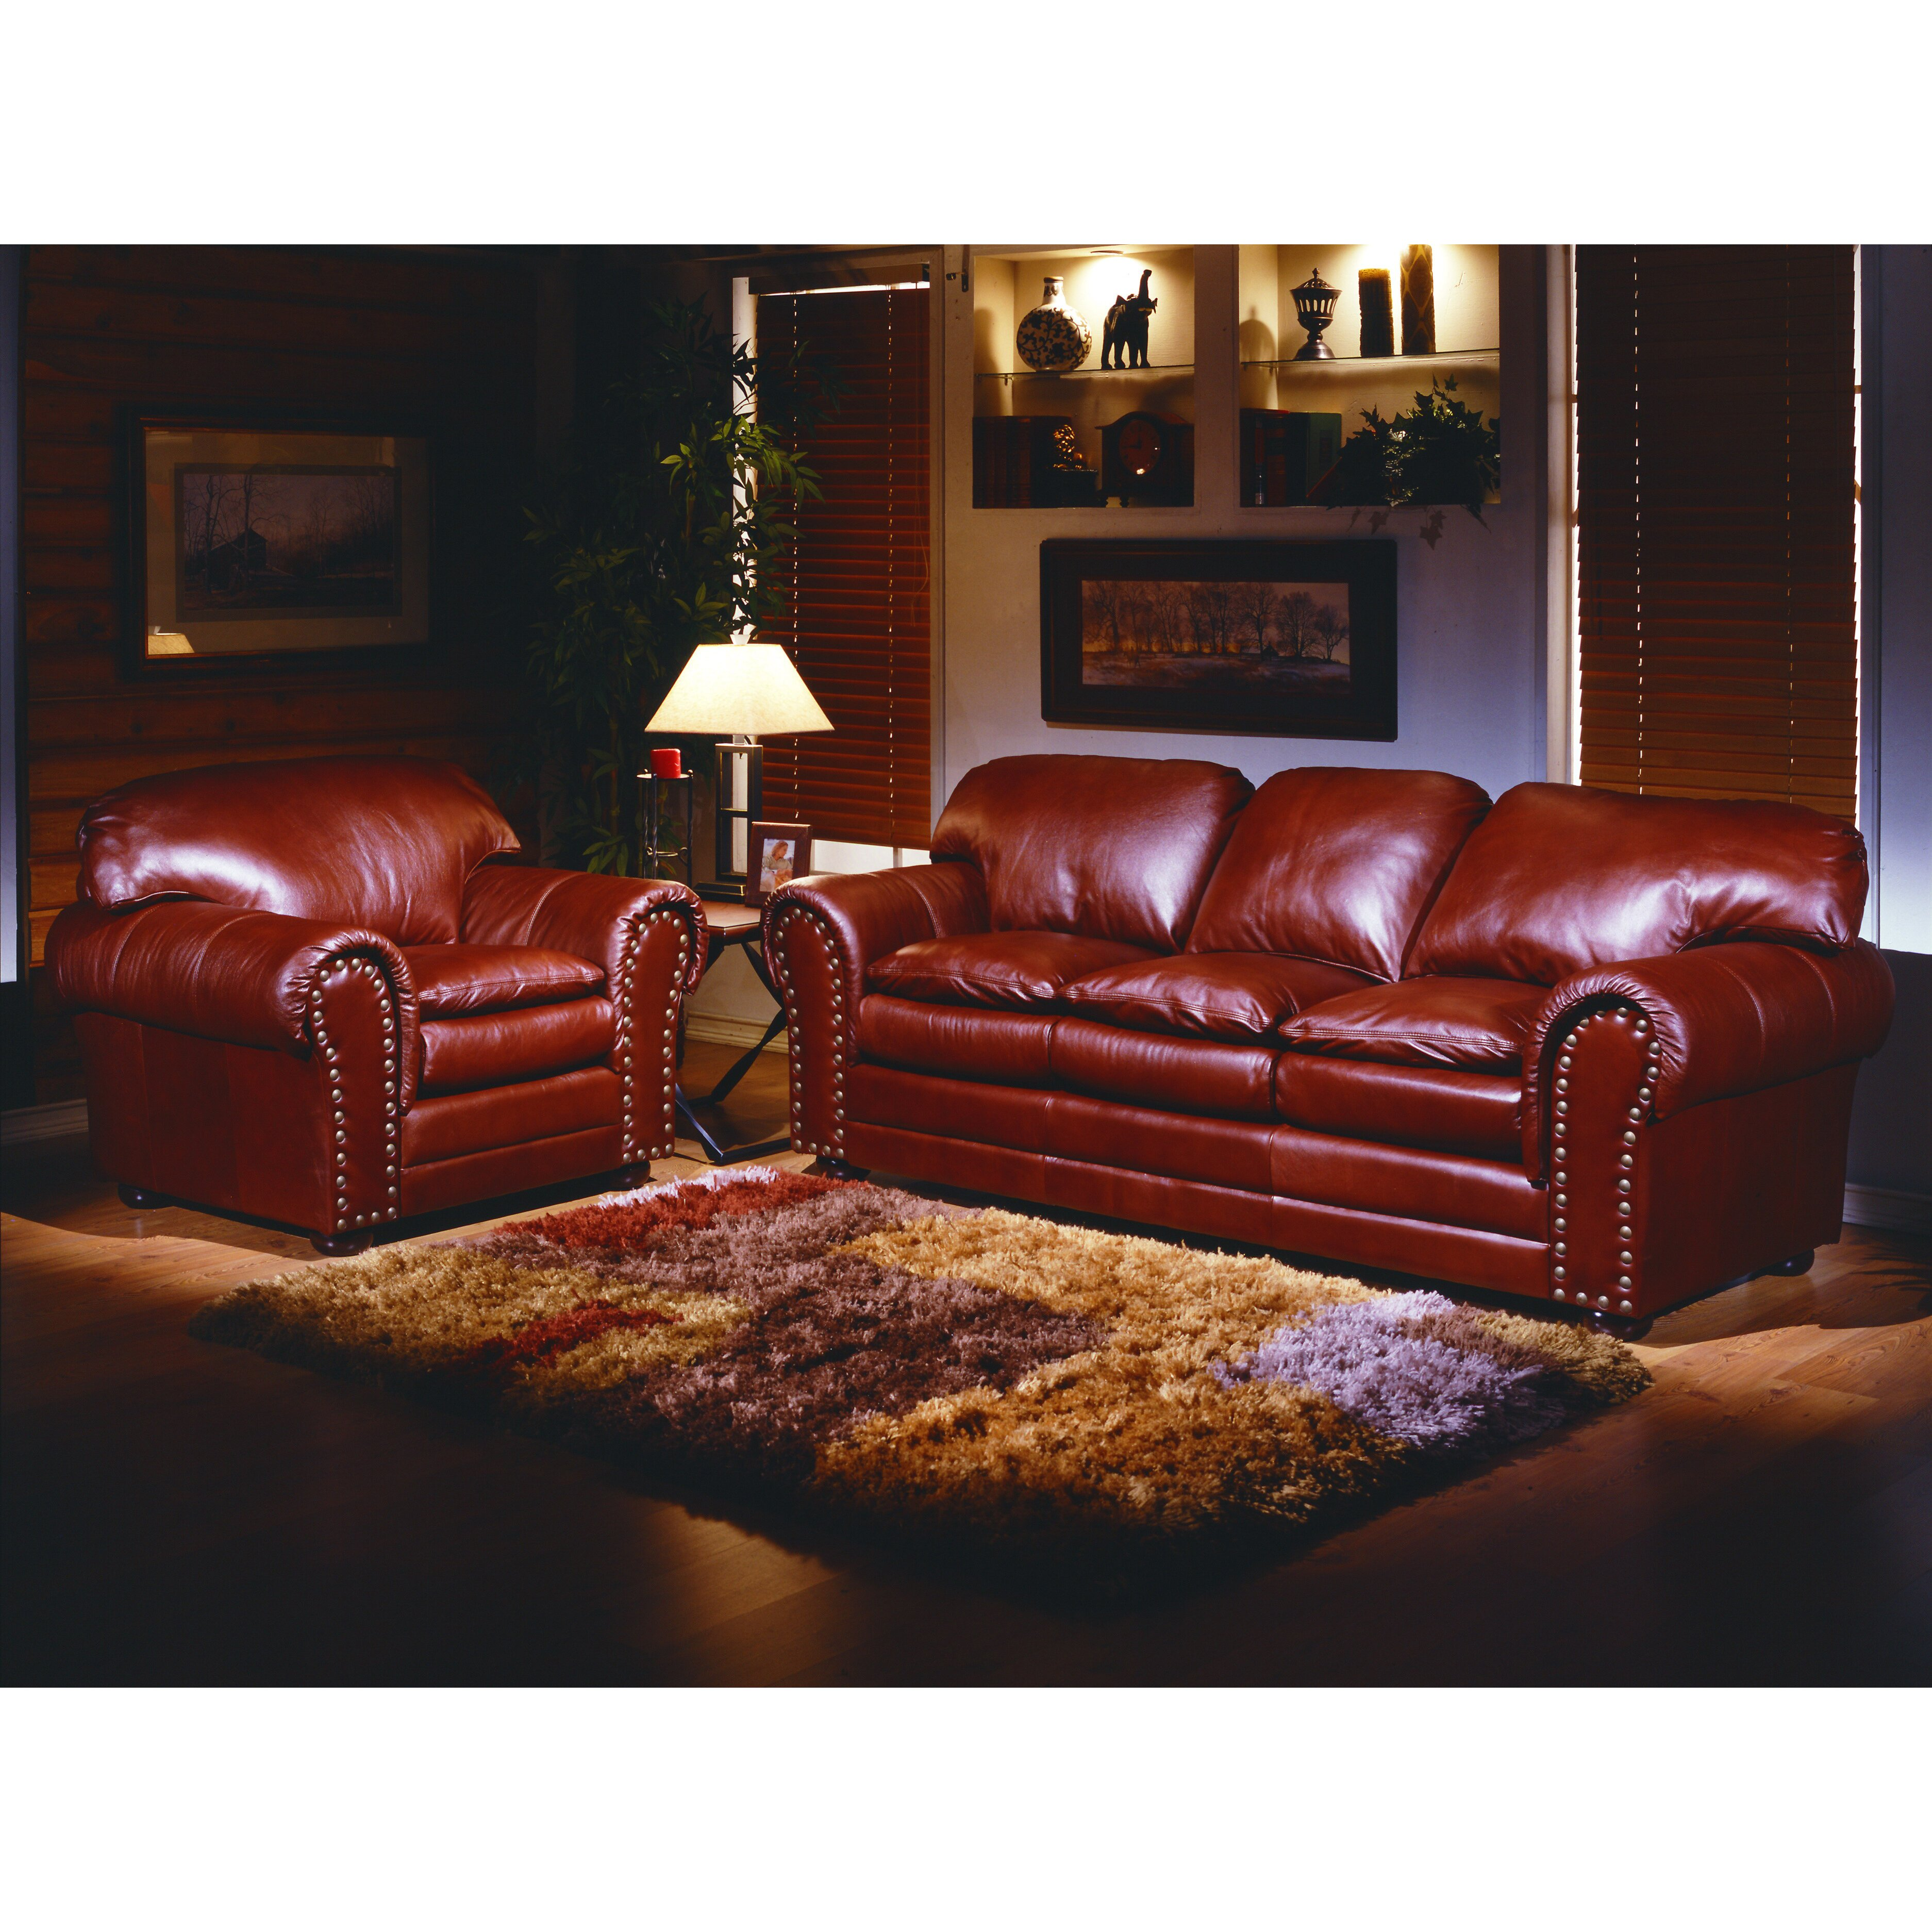 Leather Living Room Furniture: Omnia Leather Torre 4 Seat Leather Living Room Set